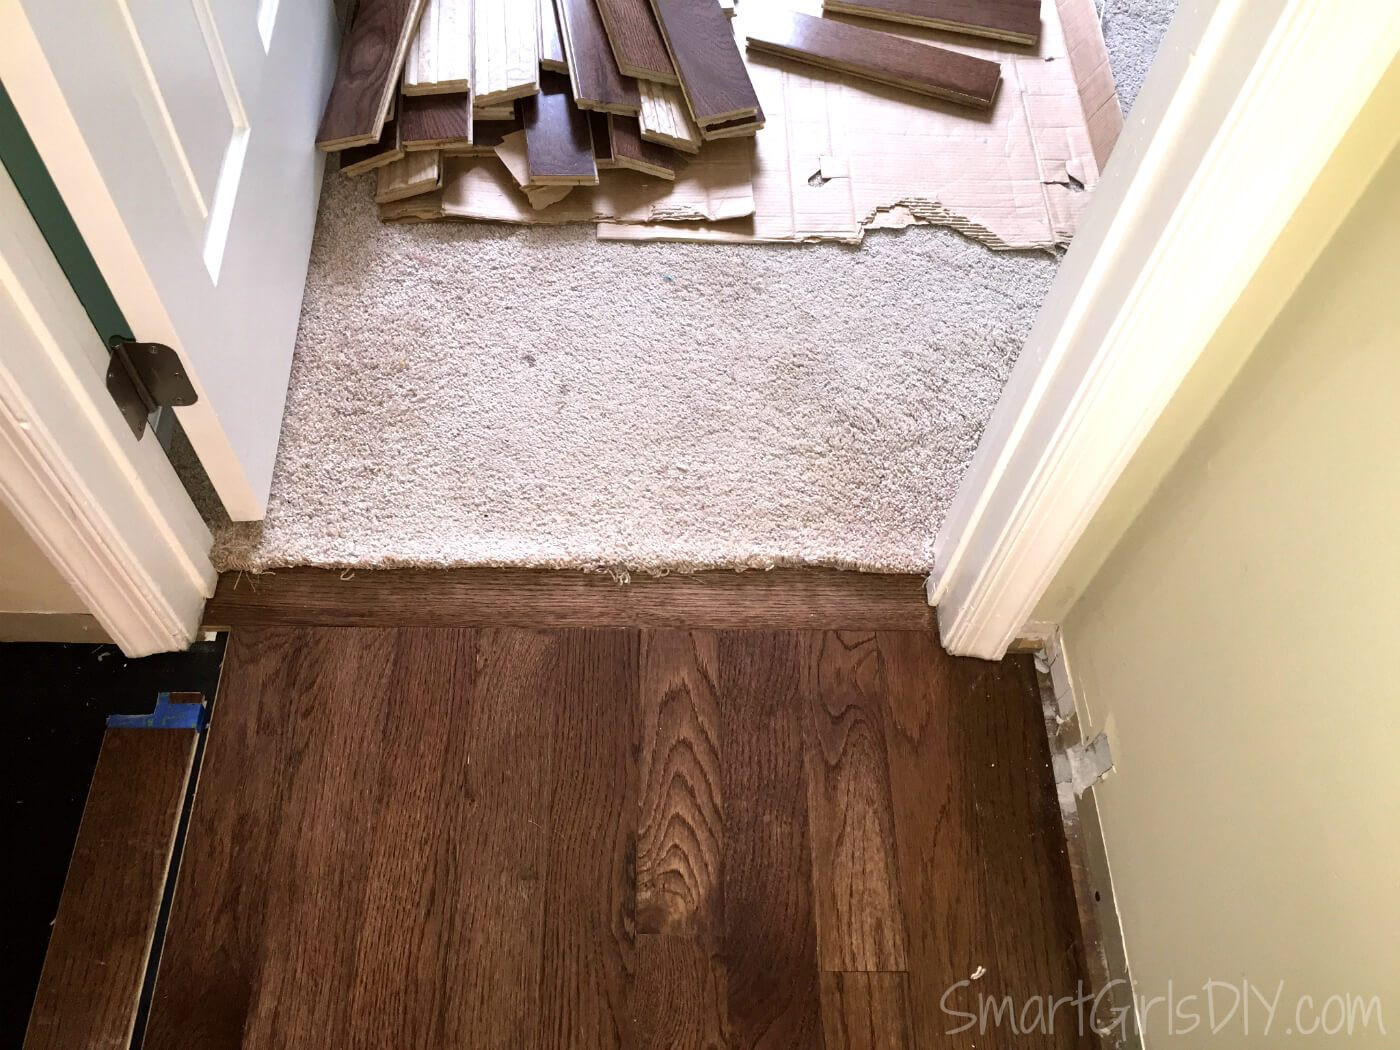 hardwood floor installation tips of upstairs hallway 1 installing hardwood floors within transition between carpet and hardwood floor